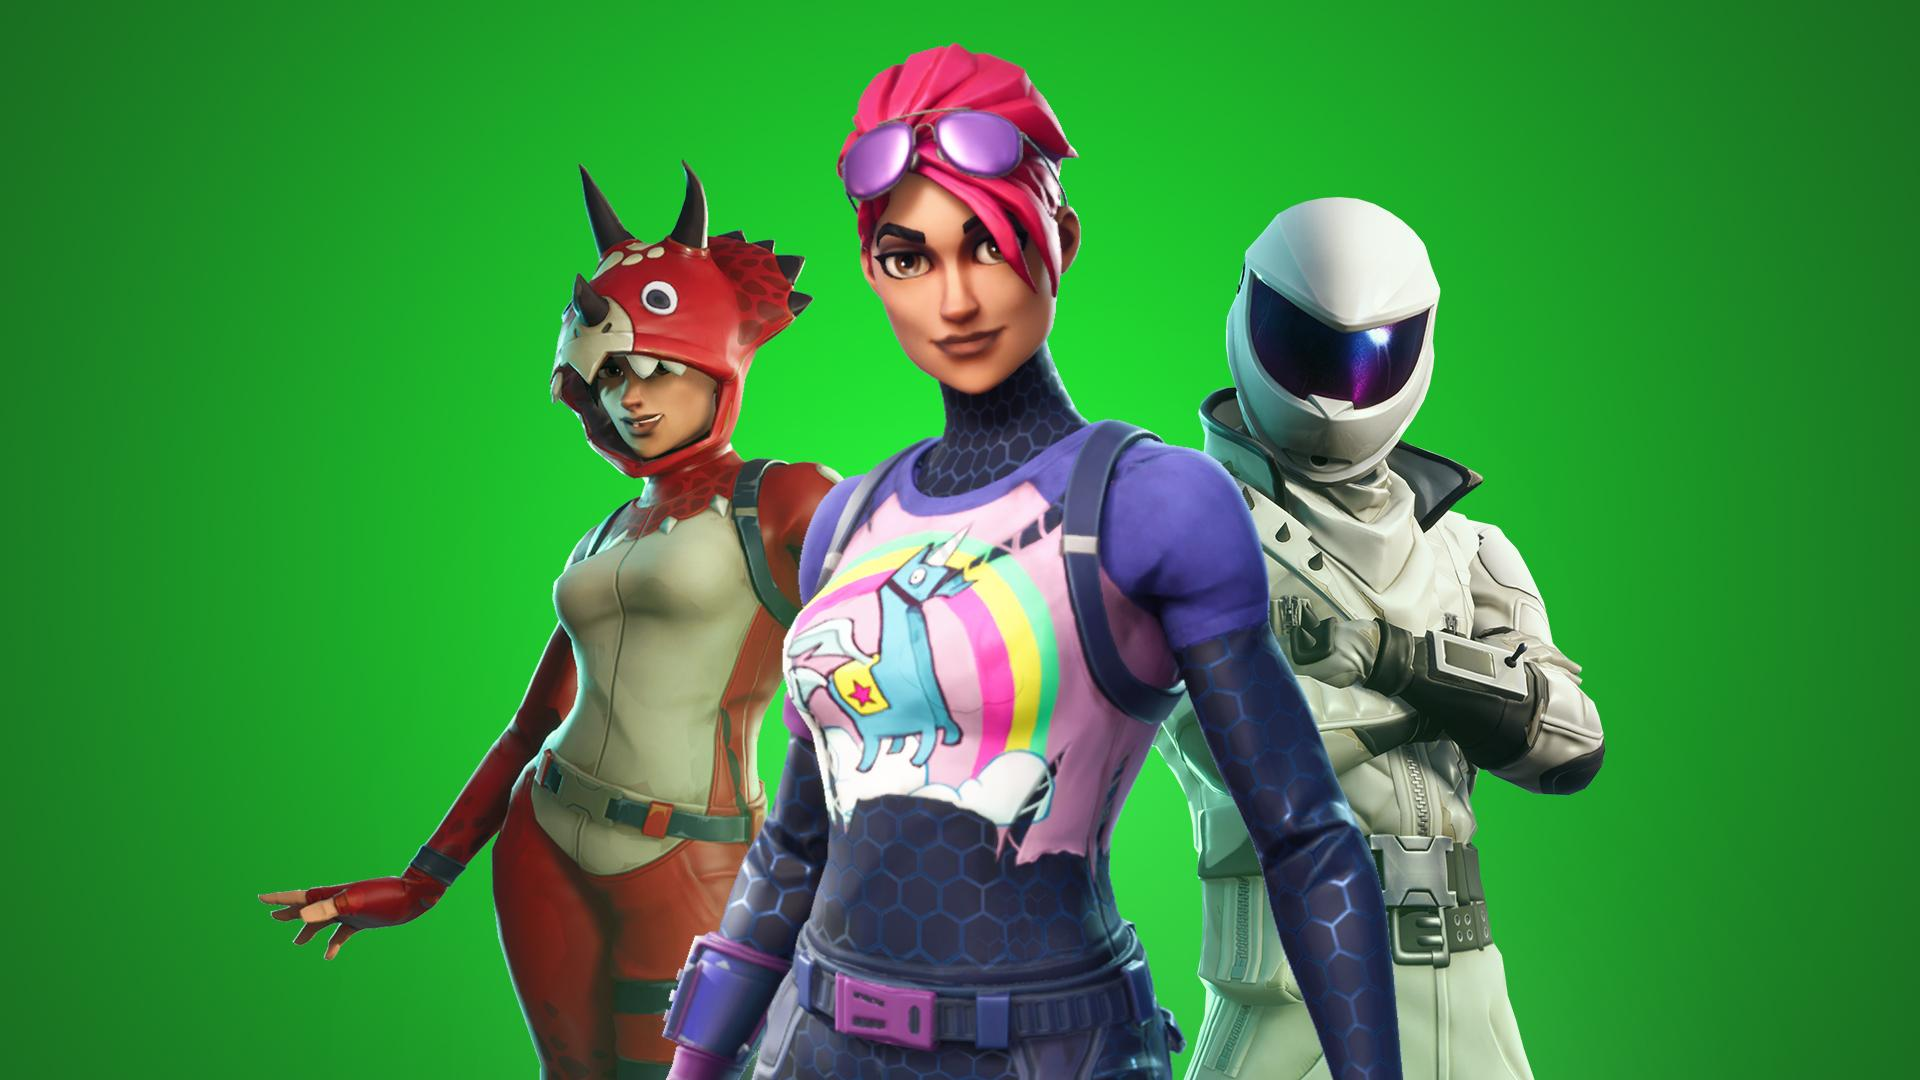 Play Fornite and earn real money